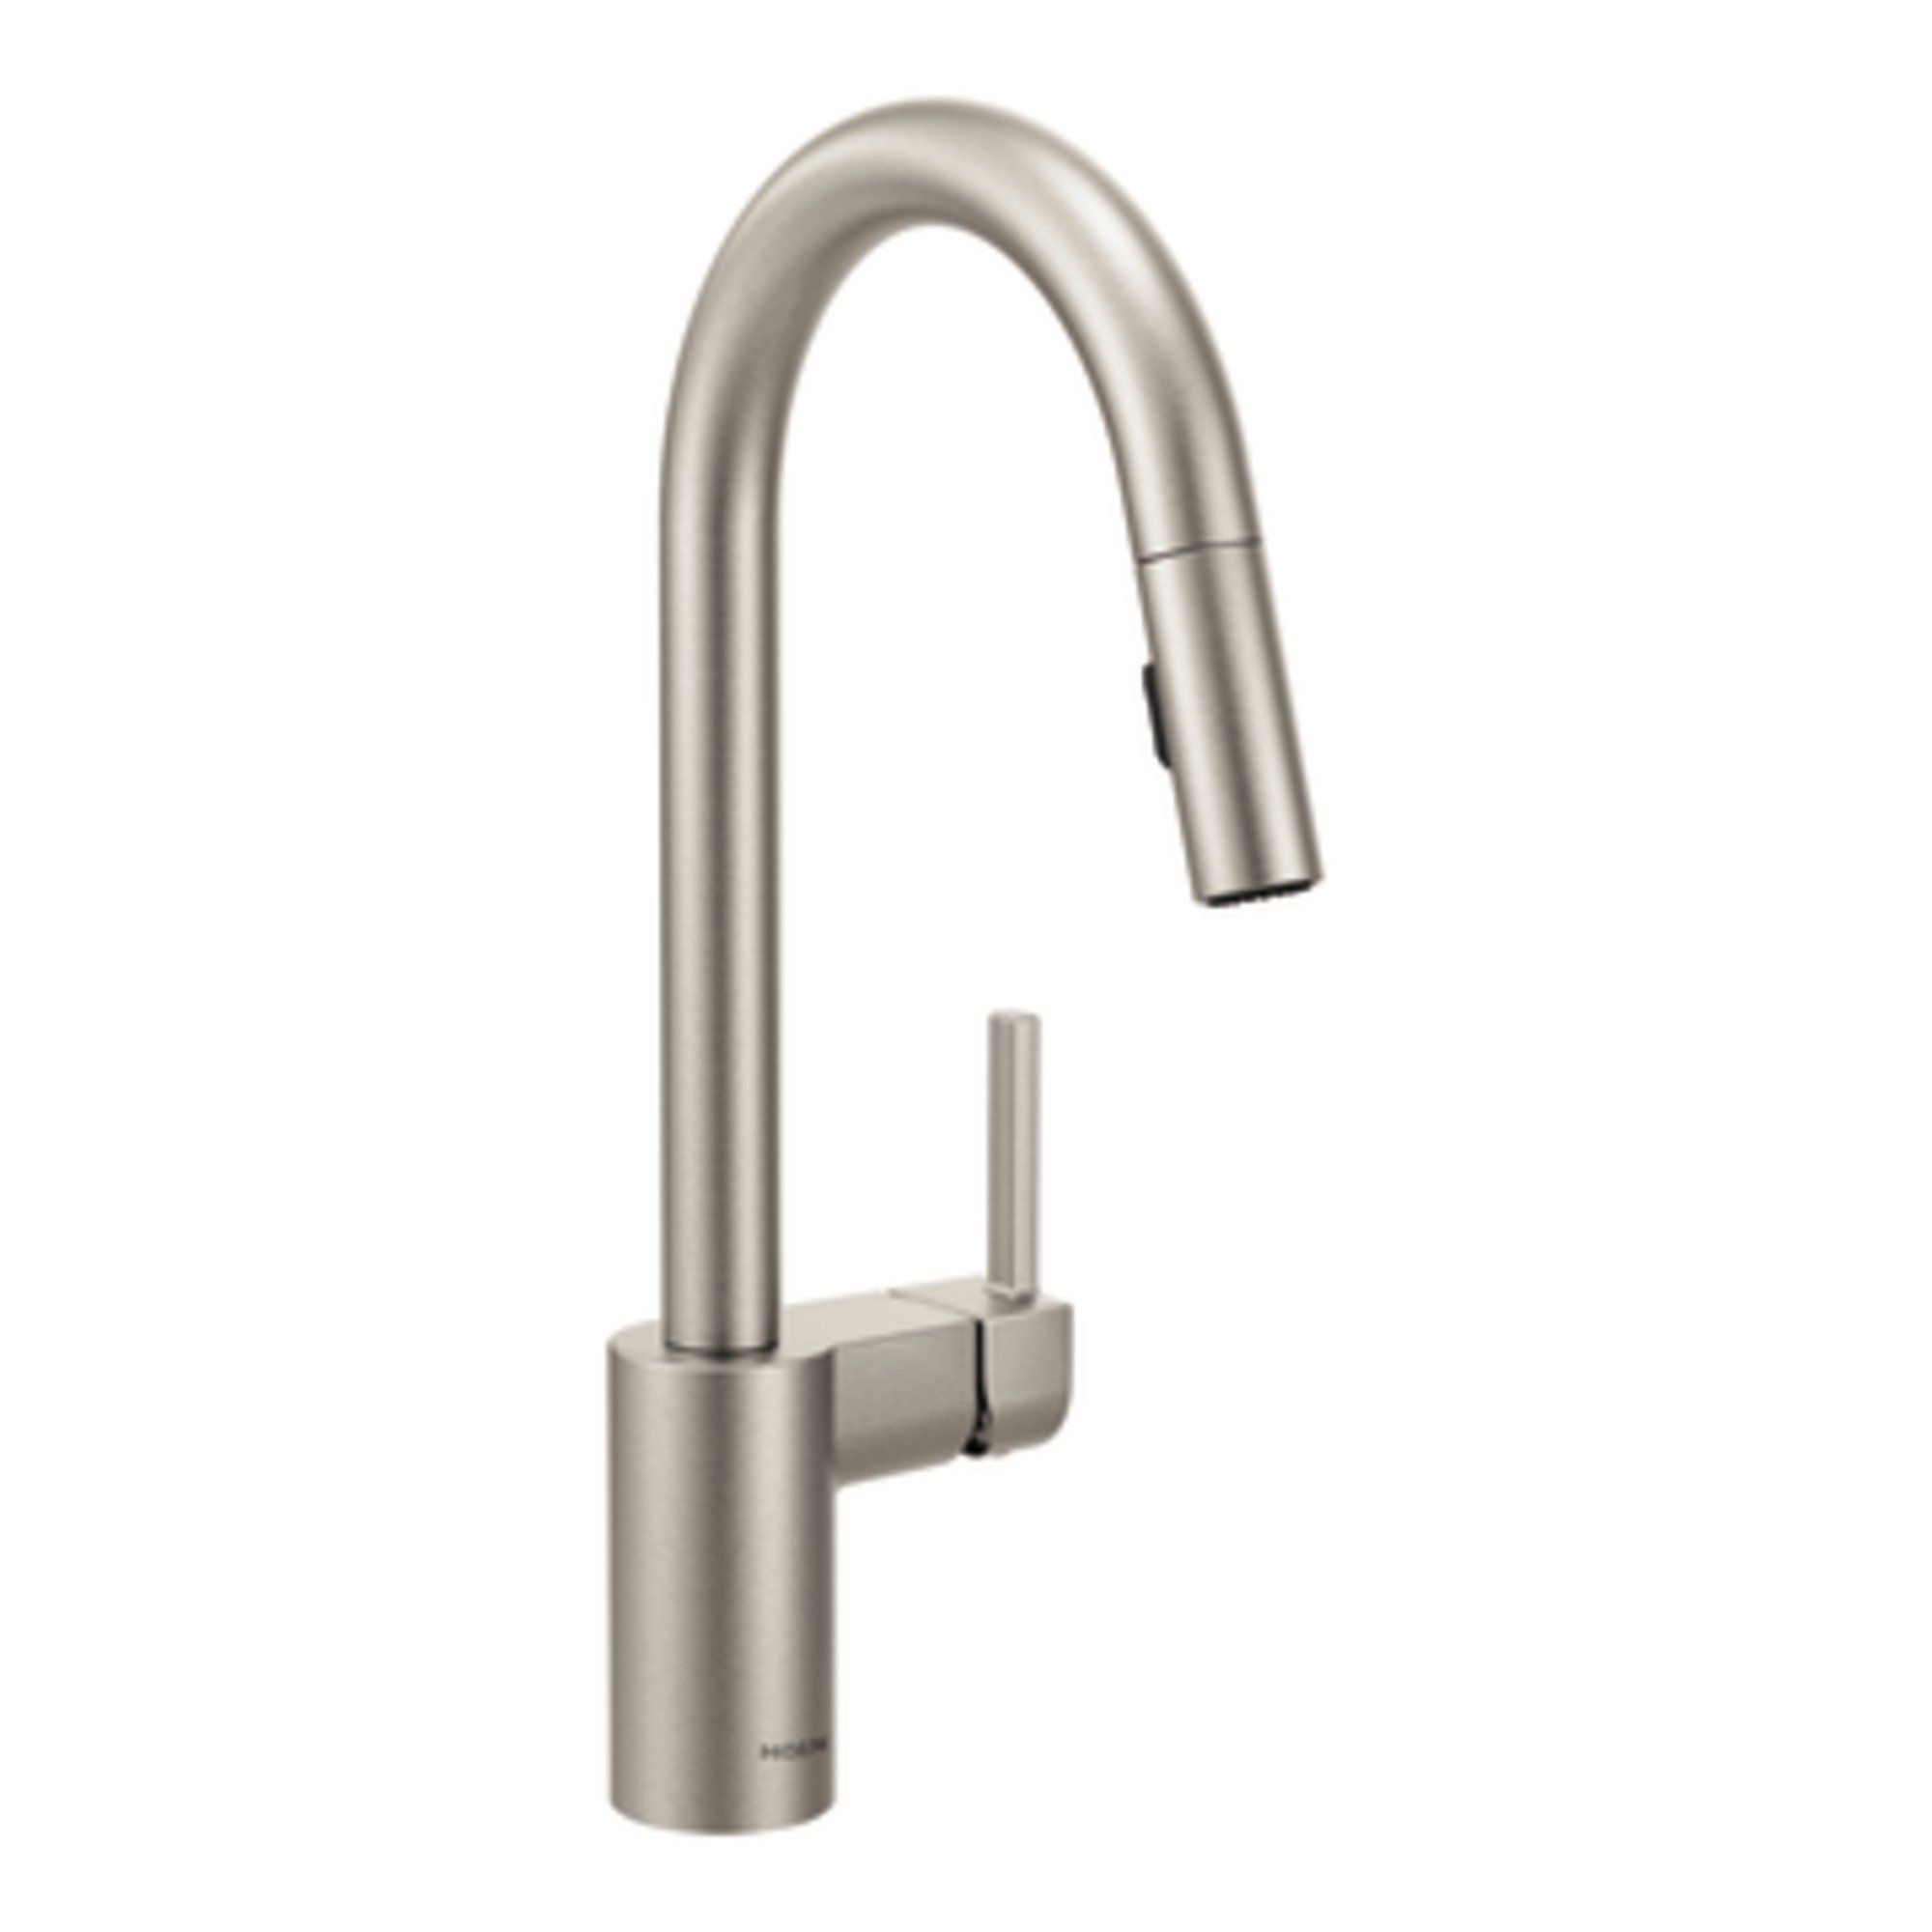 filtration cold hot terrific water coral under system and waterstone filter brondell of beverage faucets counter faucet fabulous at stage single